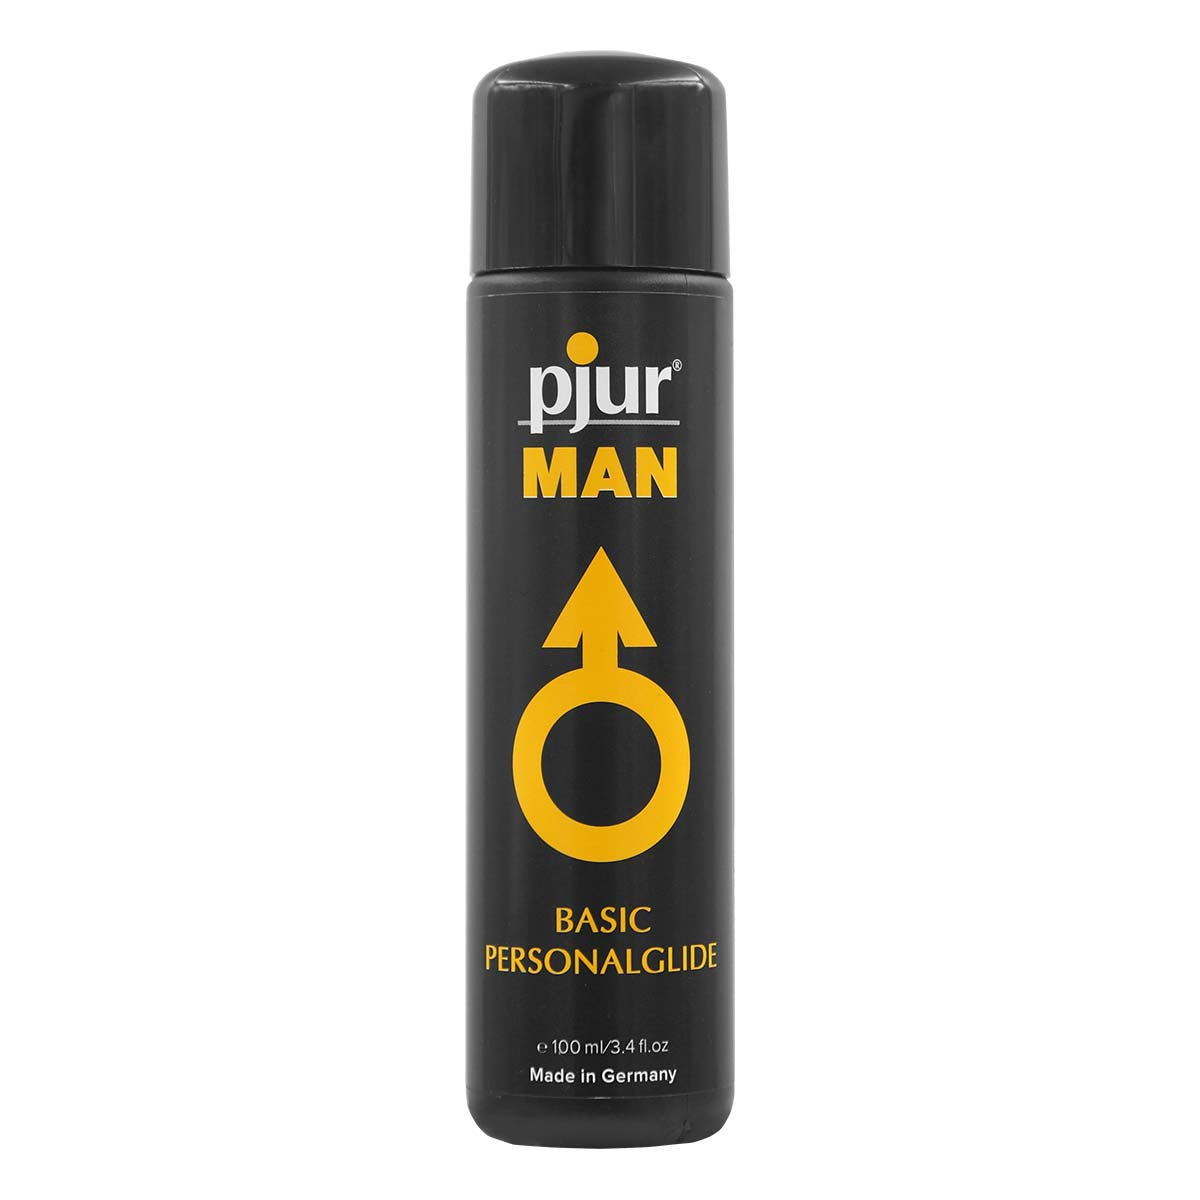 pjur MAN BASIC PERSONALGLIDE 100ml Silicone-based Lubricant